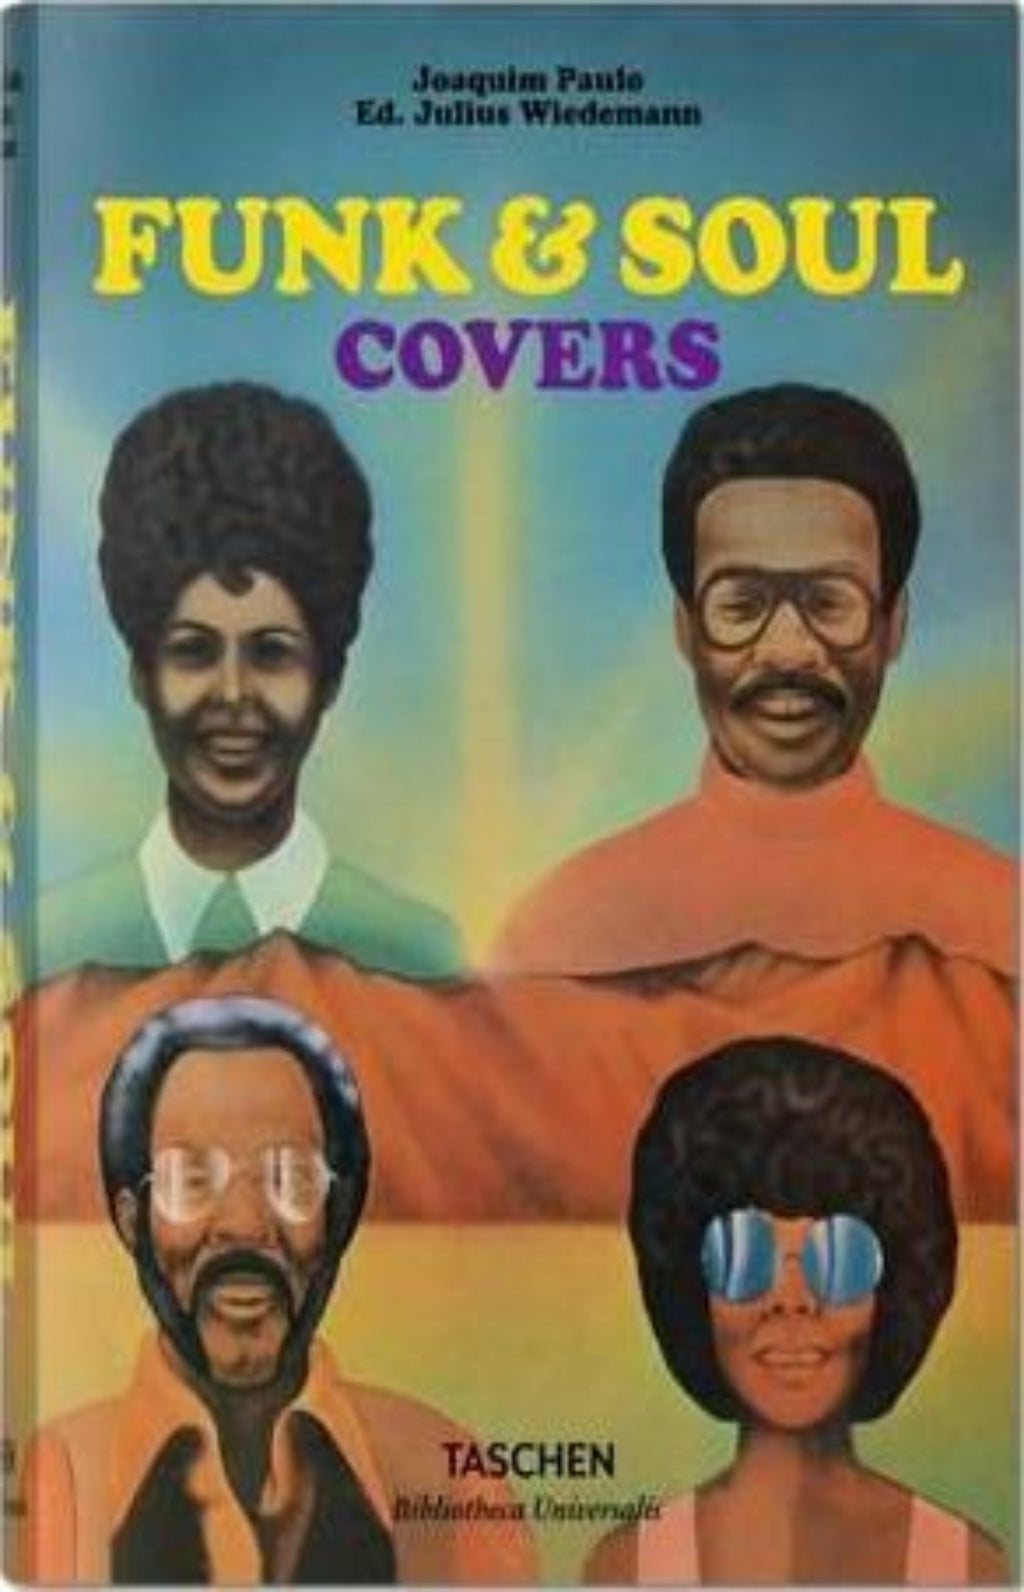 Funk & Soul Covers - Bibliotheca Universalis